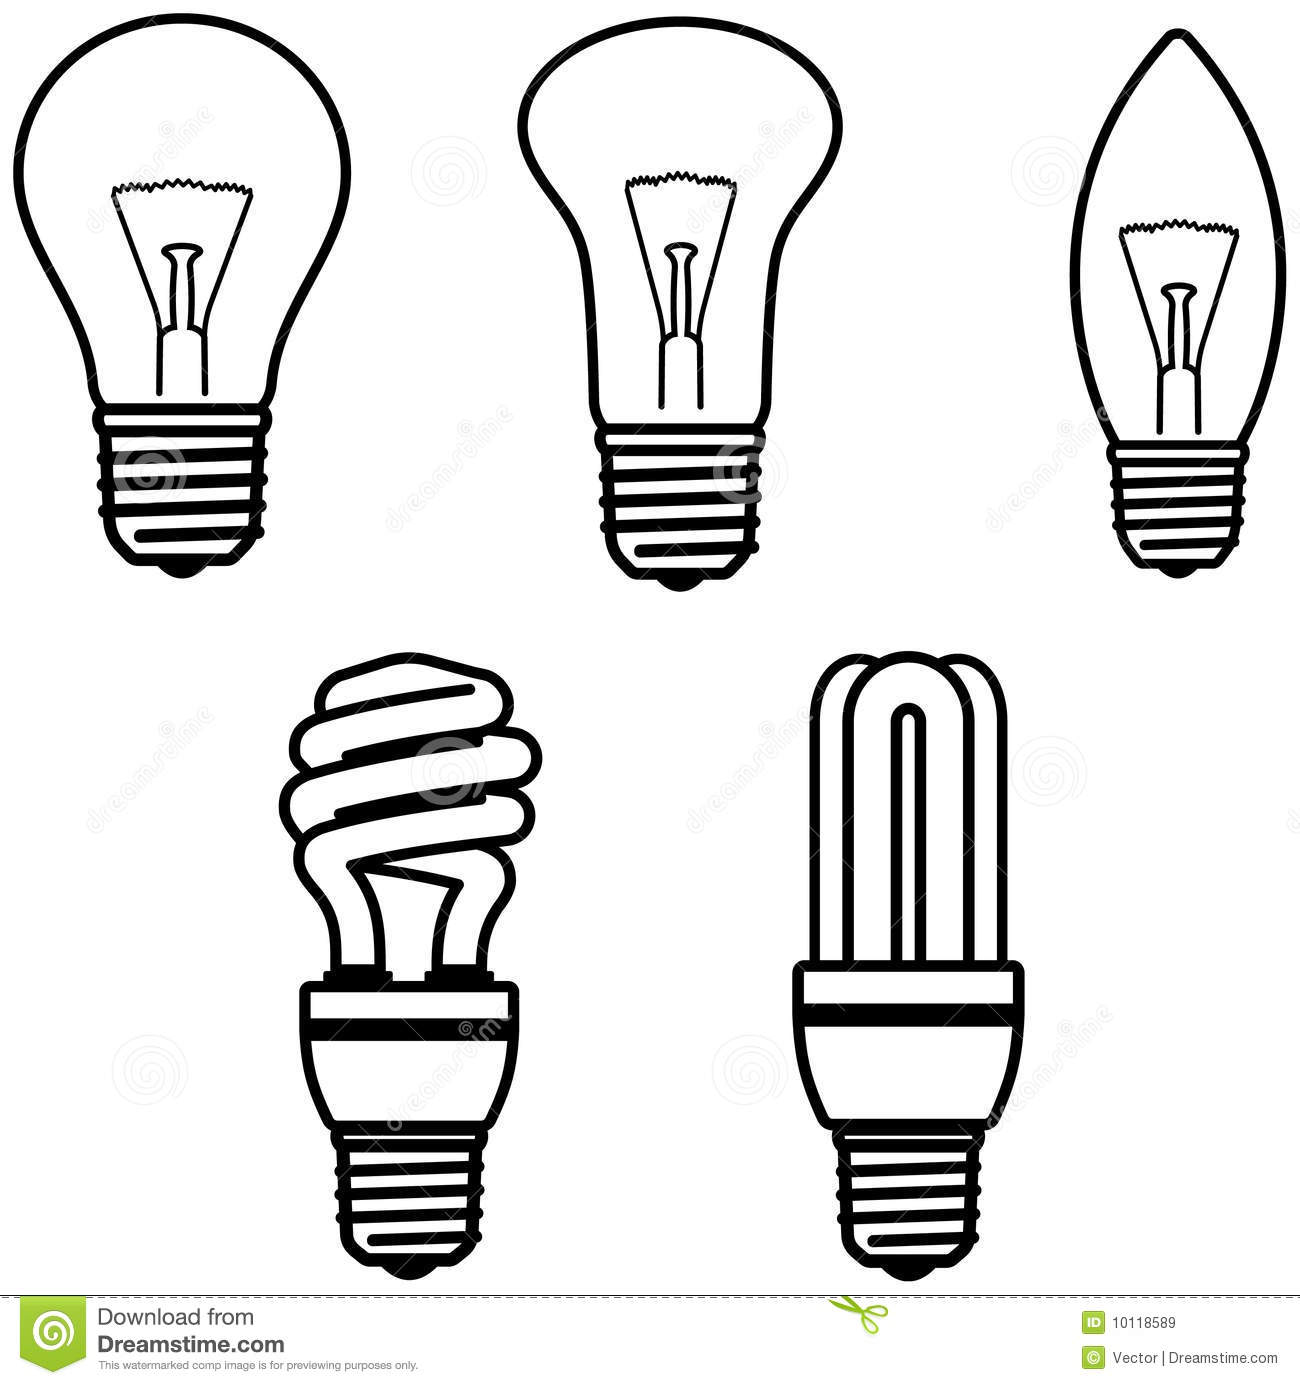 light bulbs  u2013 vector illustration royalty free stock